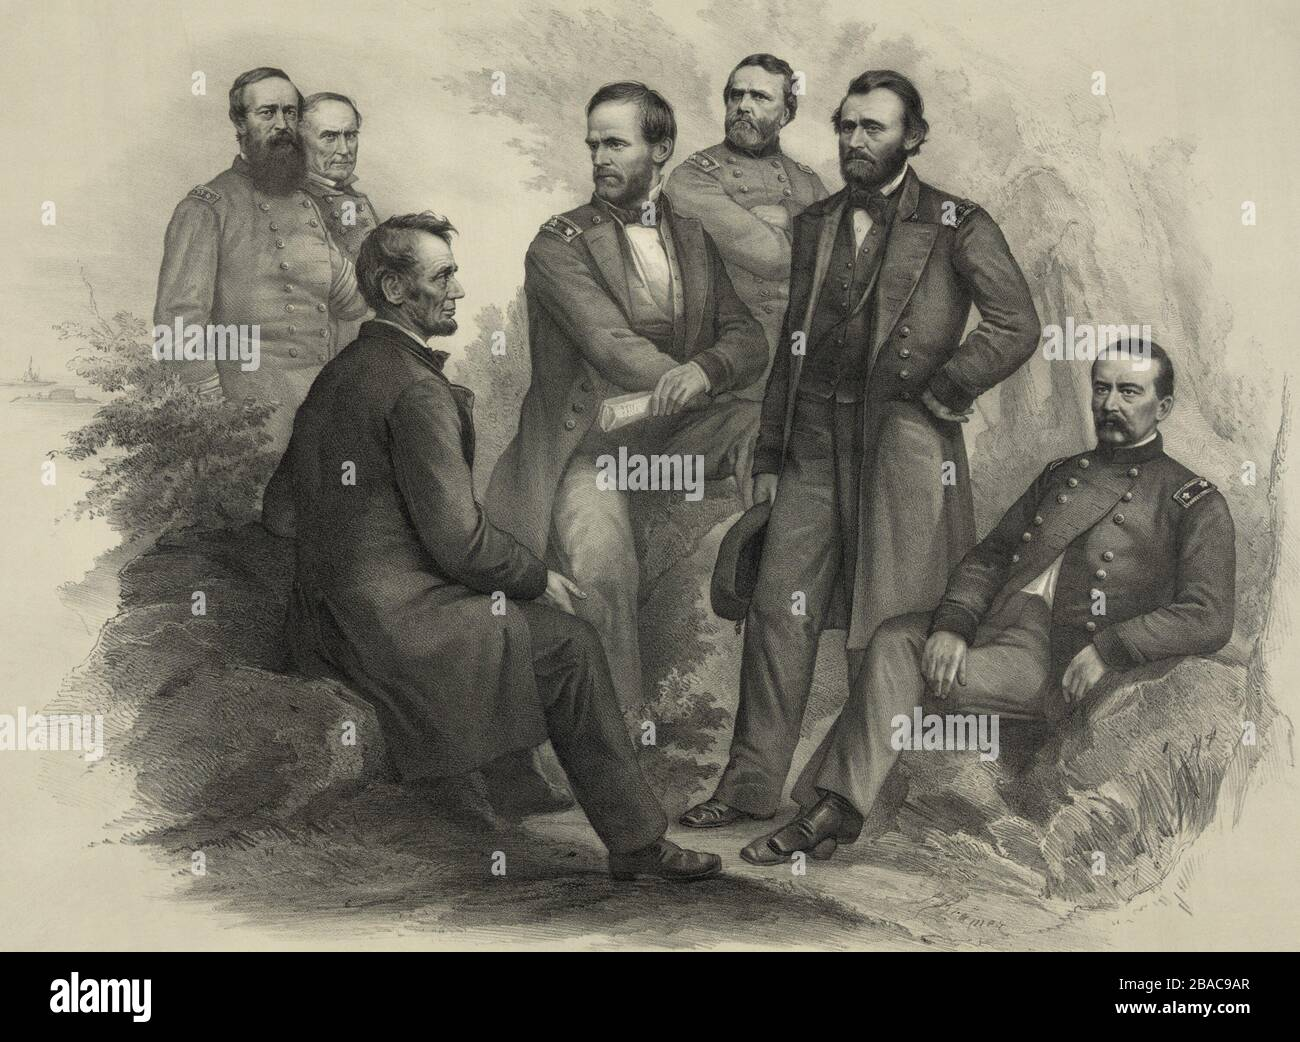 US Civil War. Imagined scene of President Abraham Lincoln sitting on a rock talking with his victorious commanders. From left: Adm. David Porter, Adm. David Farragut, President Abraham Lincoln, Gen. William Sherman, Gen. George Thomas, Gen. Ulysses Grant, and Gen. Philip Sheridan  (BSLOC_2018_10_55) Stock Photo